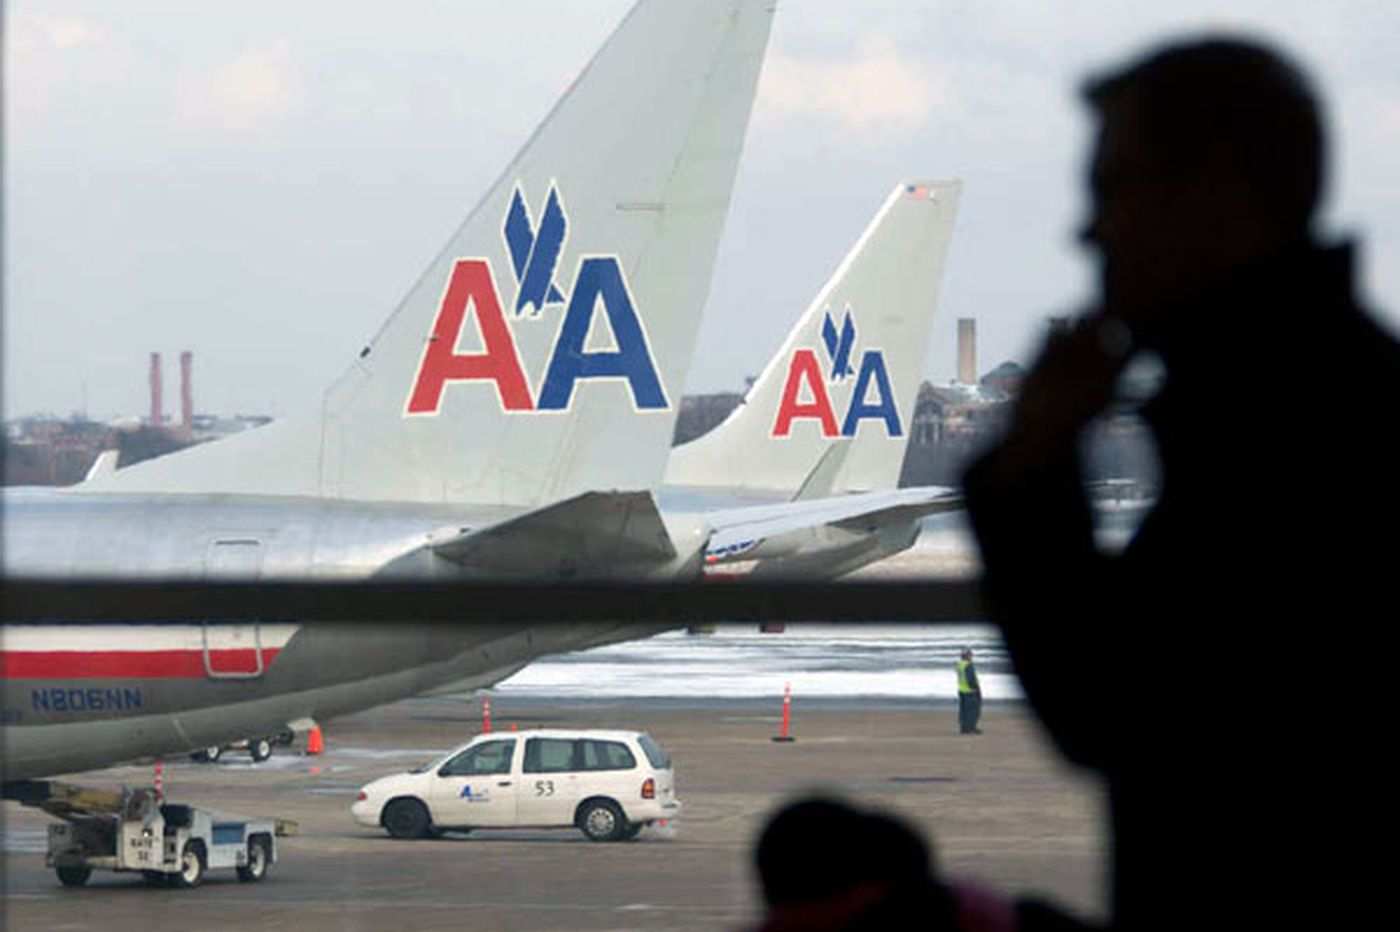 American Airlines to reap benefits from oil-price decline